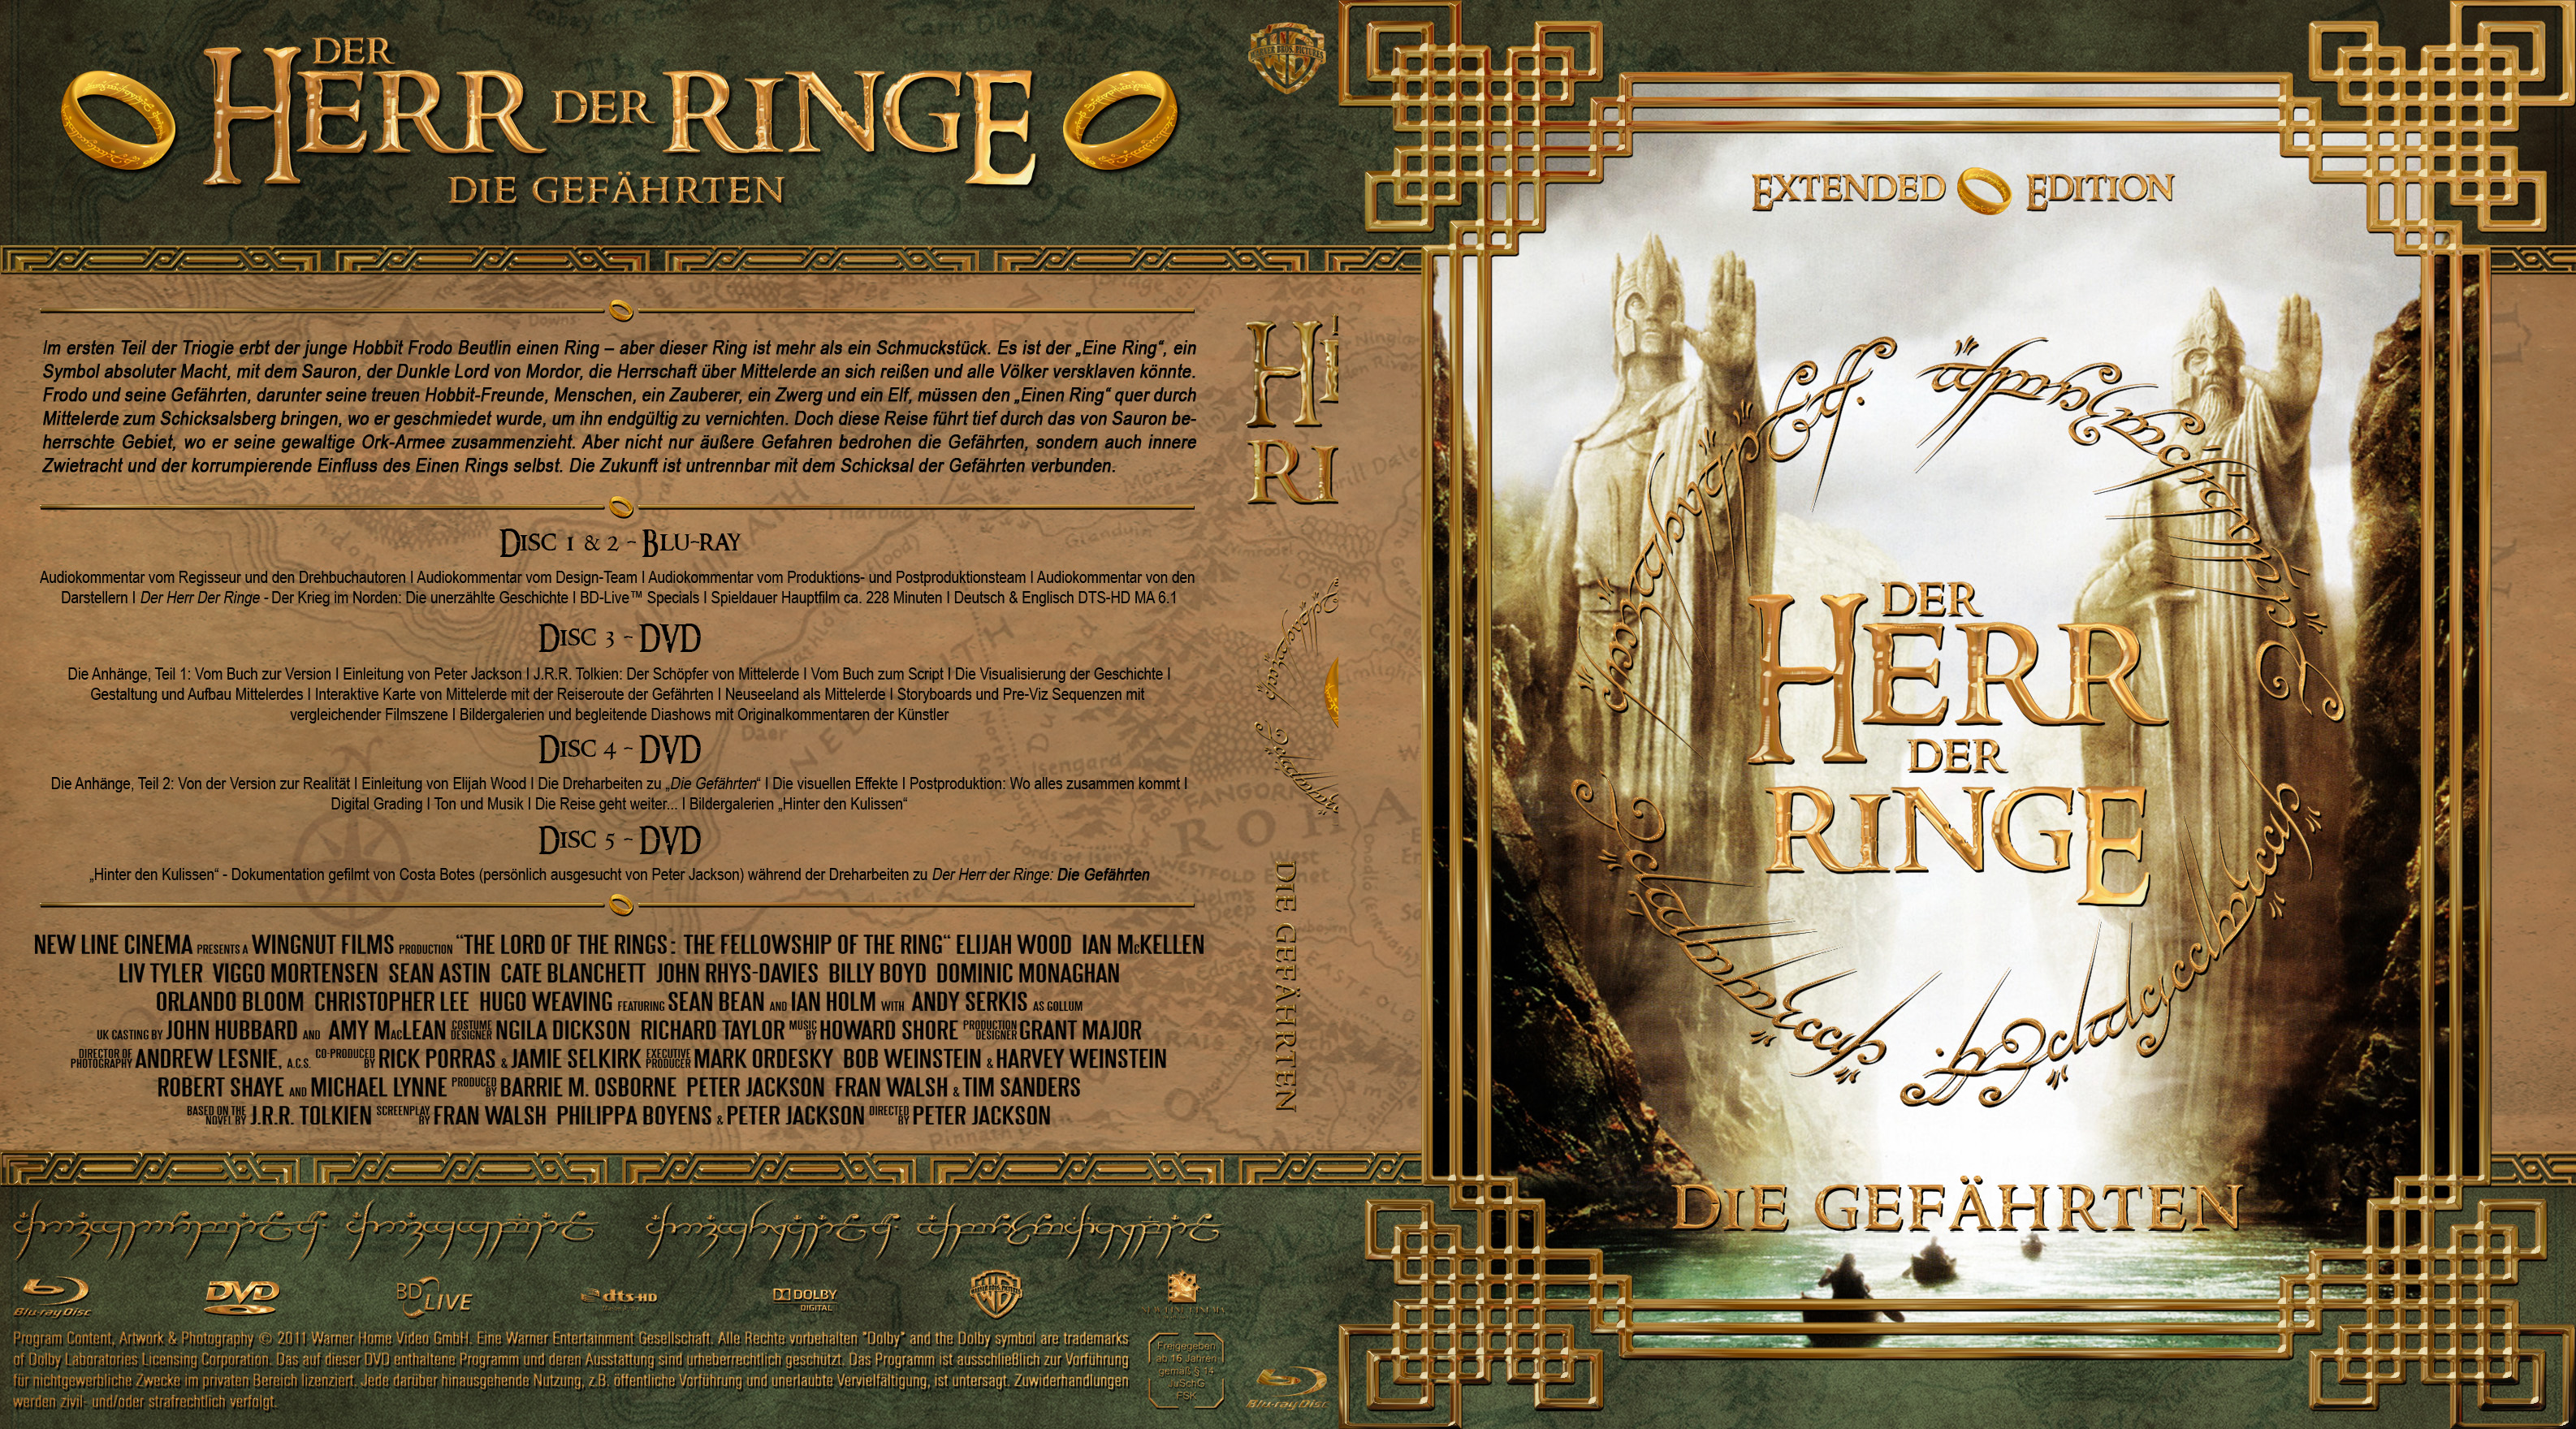 Der Herr Der Ringe 1 Extended Edition Version 2 Dvd Covers Cover Century Over 500 000 Album Art Covers For Free